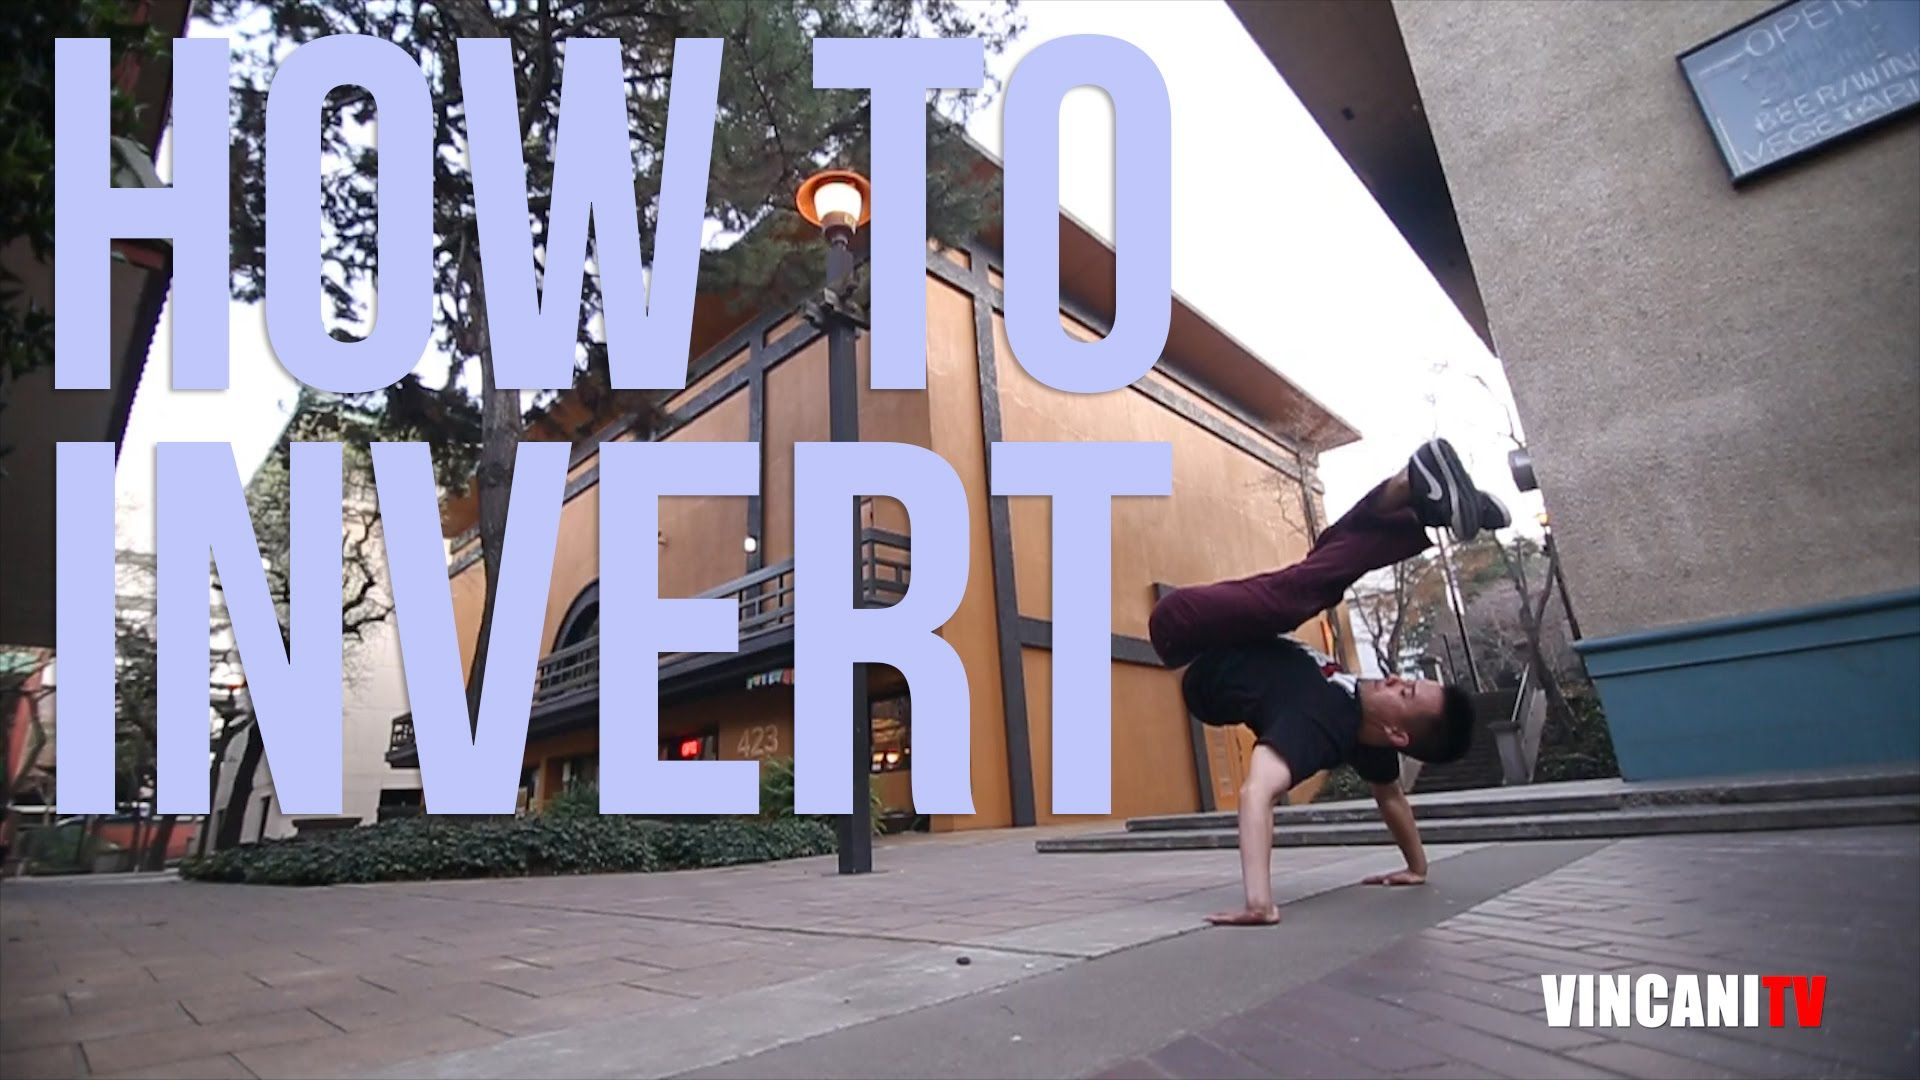 How to breakdance invert training freeze basics how to how to breakdance invert training freeze basics how to breakdance breaking tutorials pinterest breakdance and dancing baditri Image collections